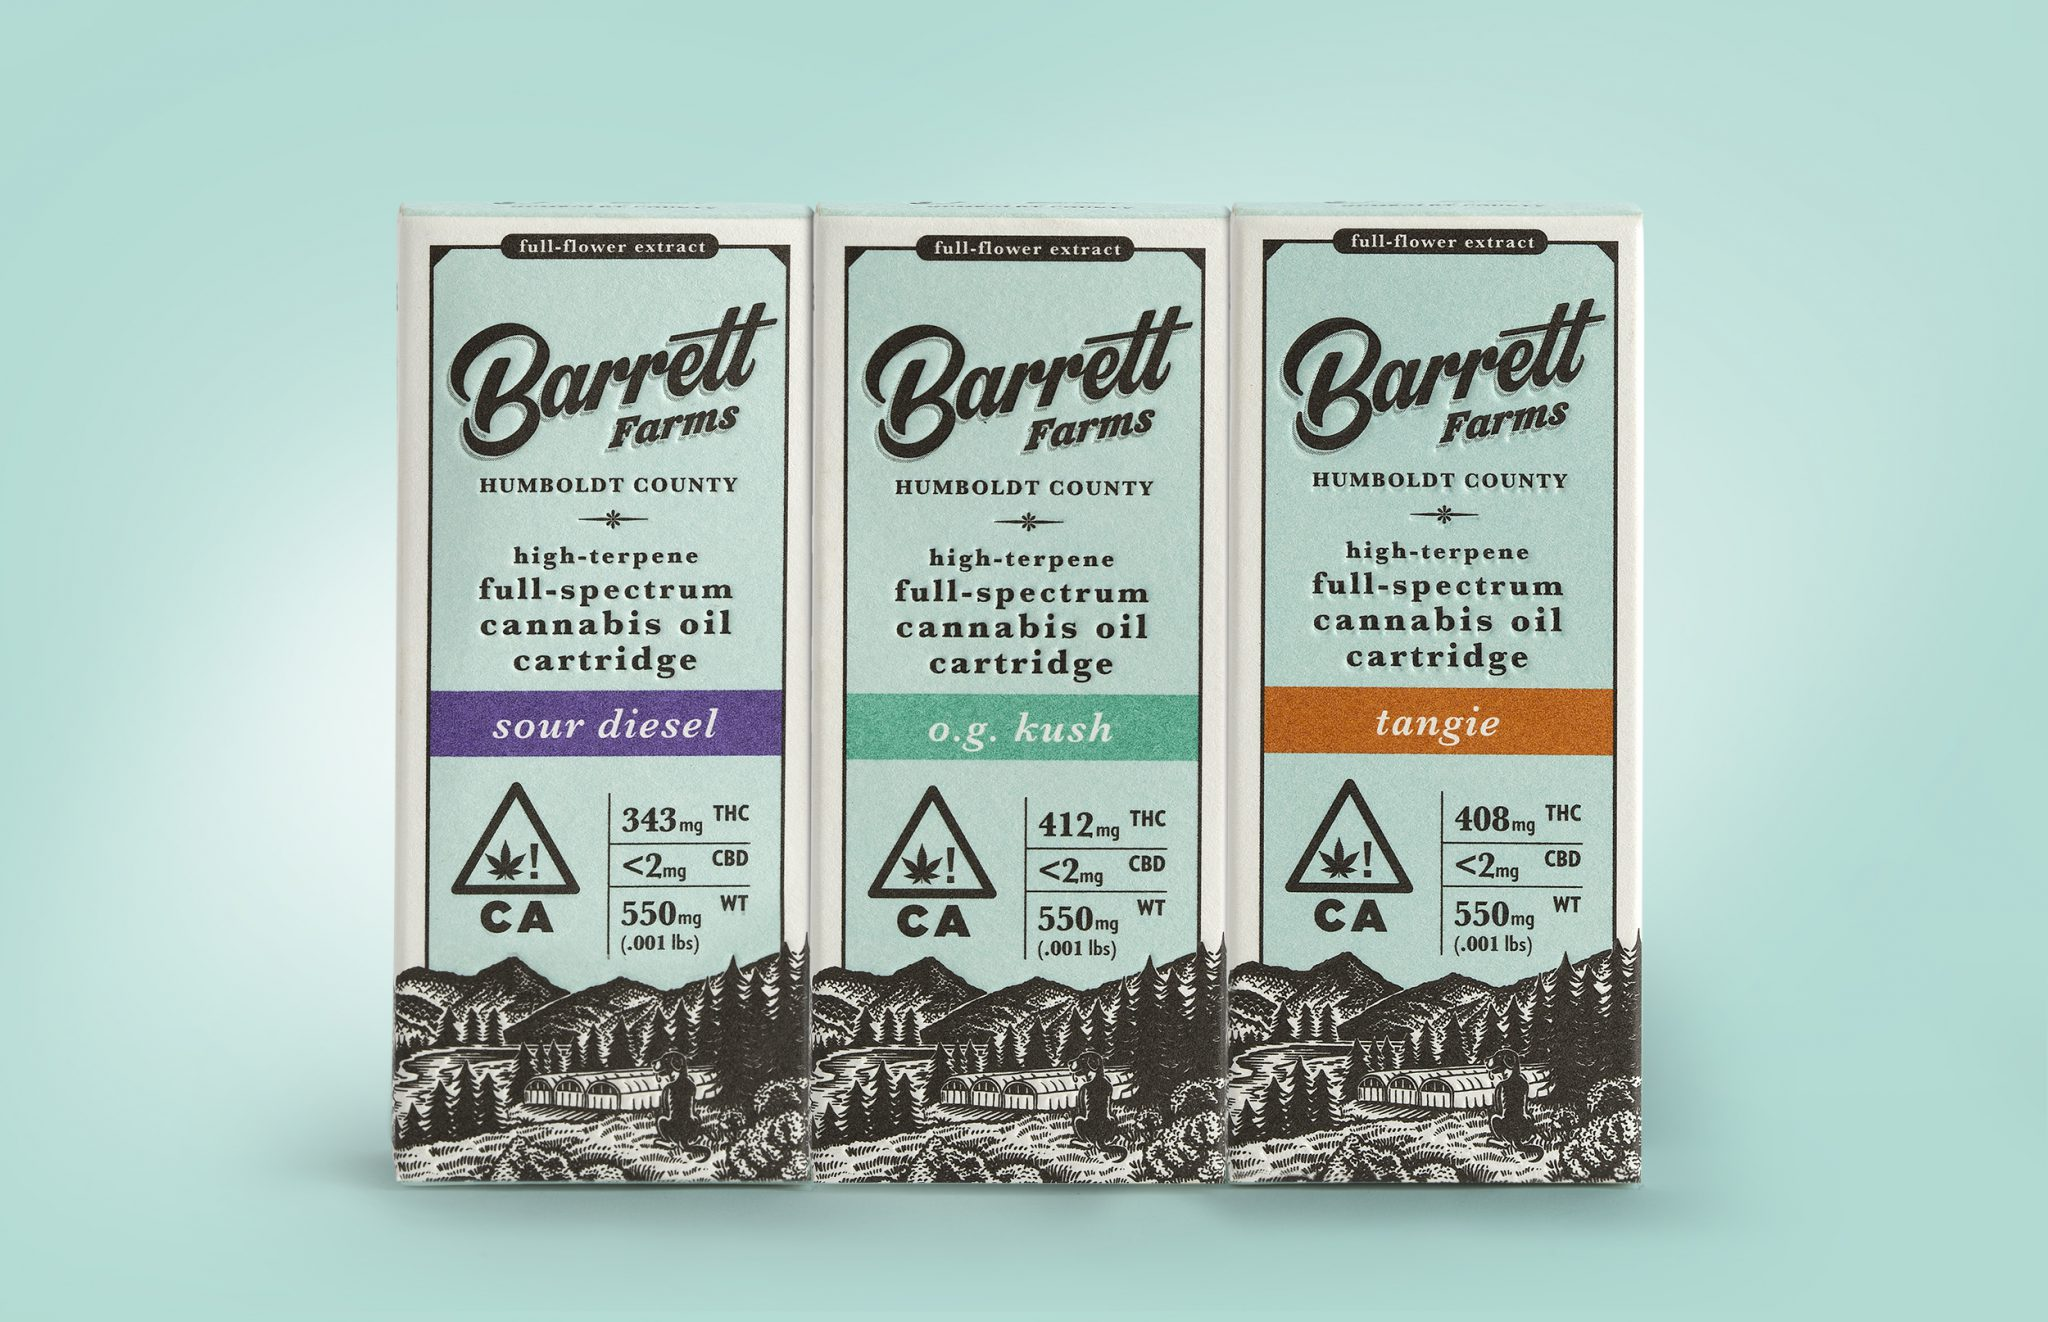 Barrett Farms Humboldt County High Spectrum Cannabis Oil Cartridge Packaging Design by Vertical in Santa Rosa, CA